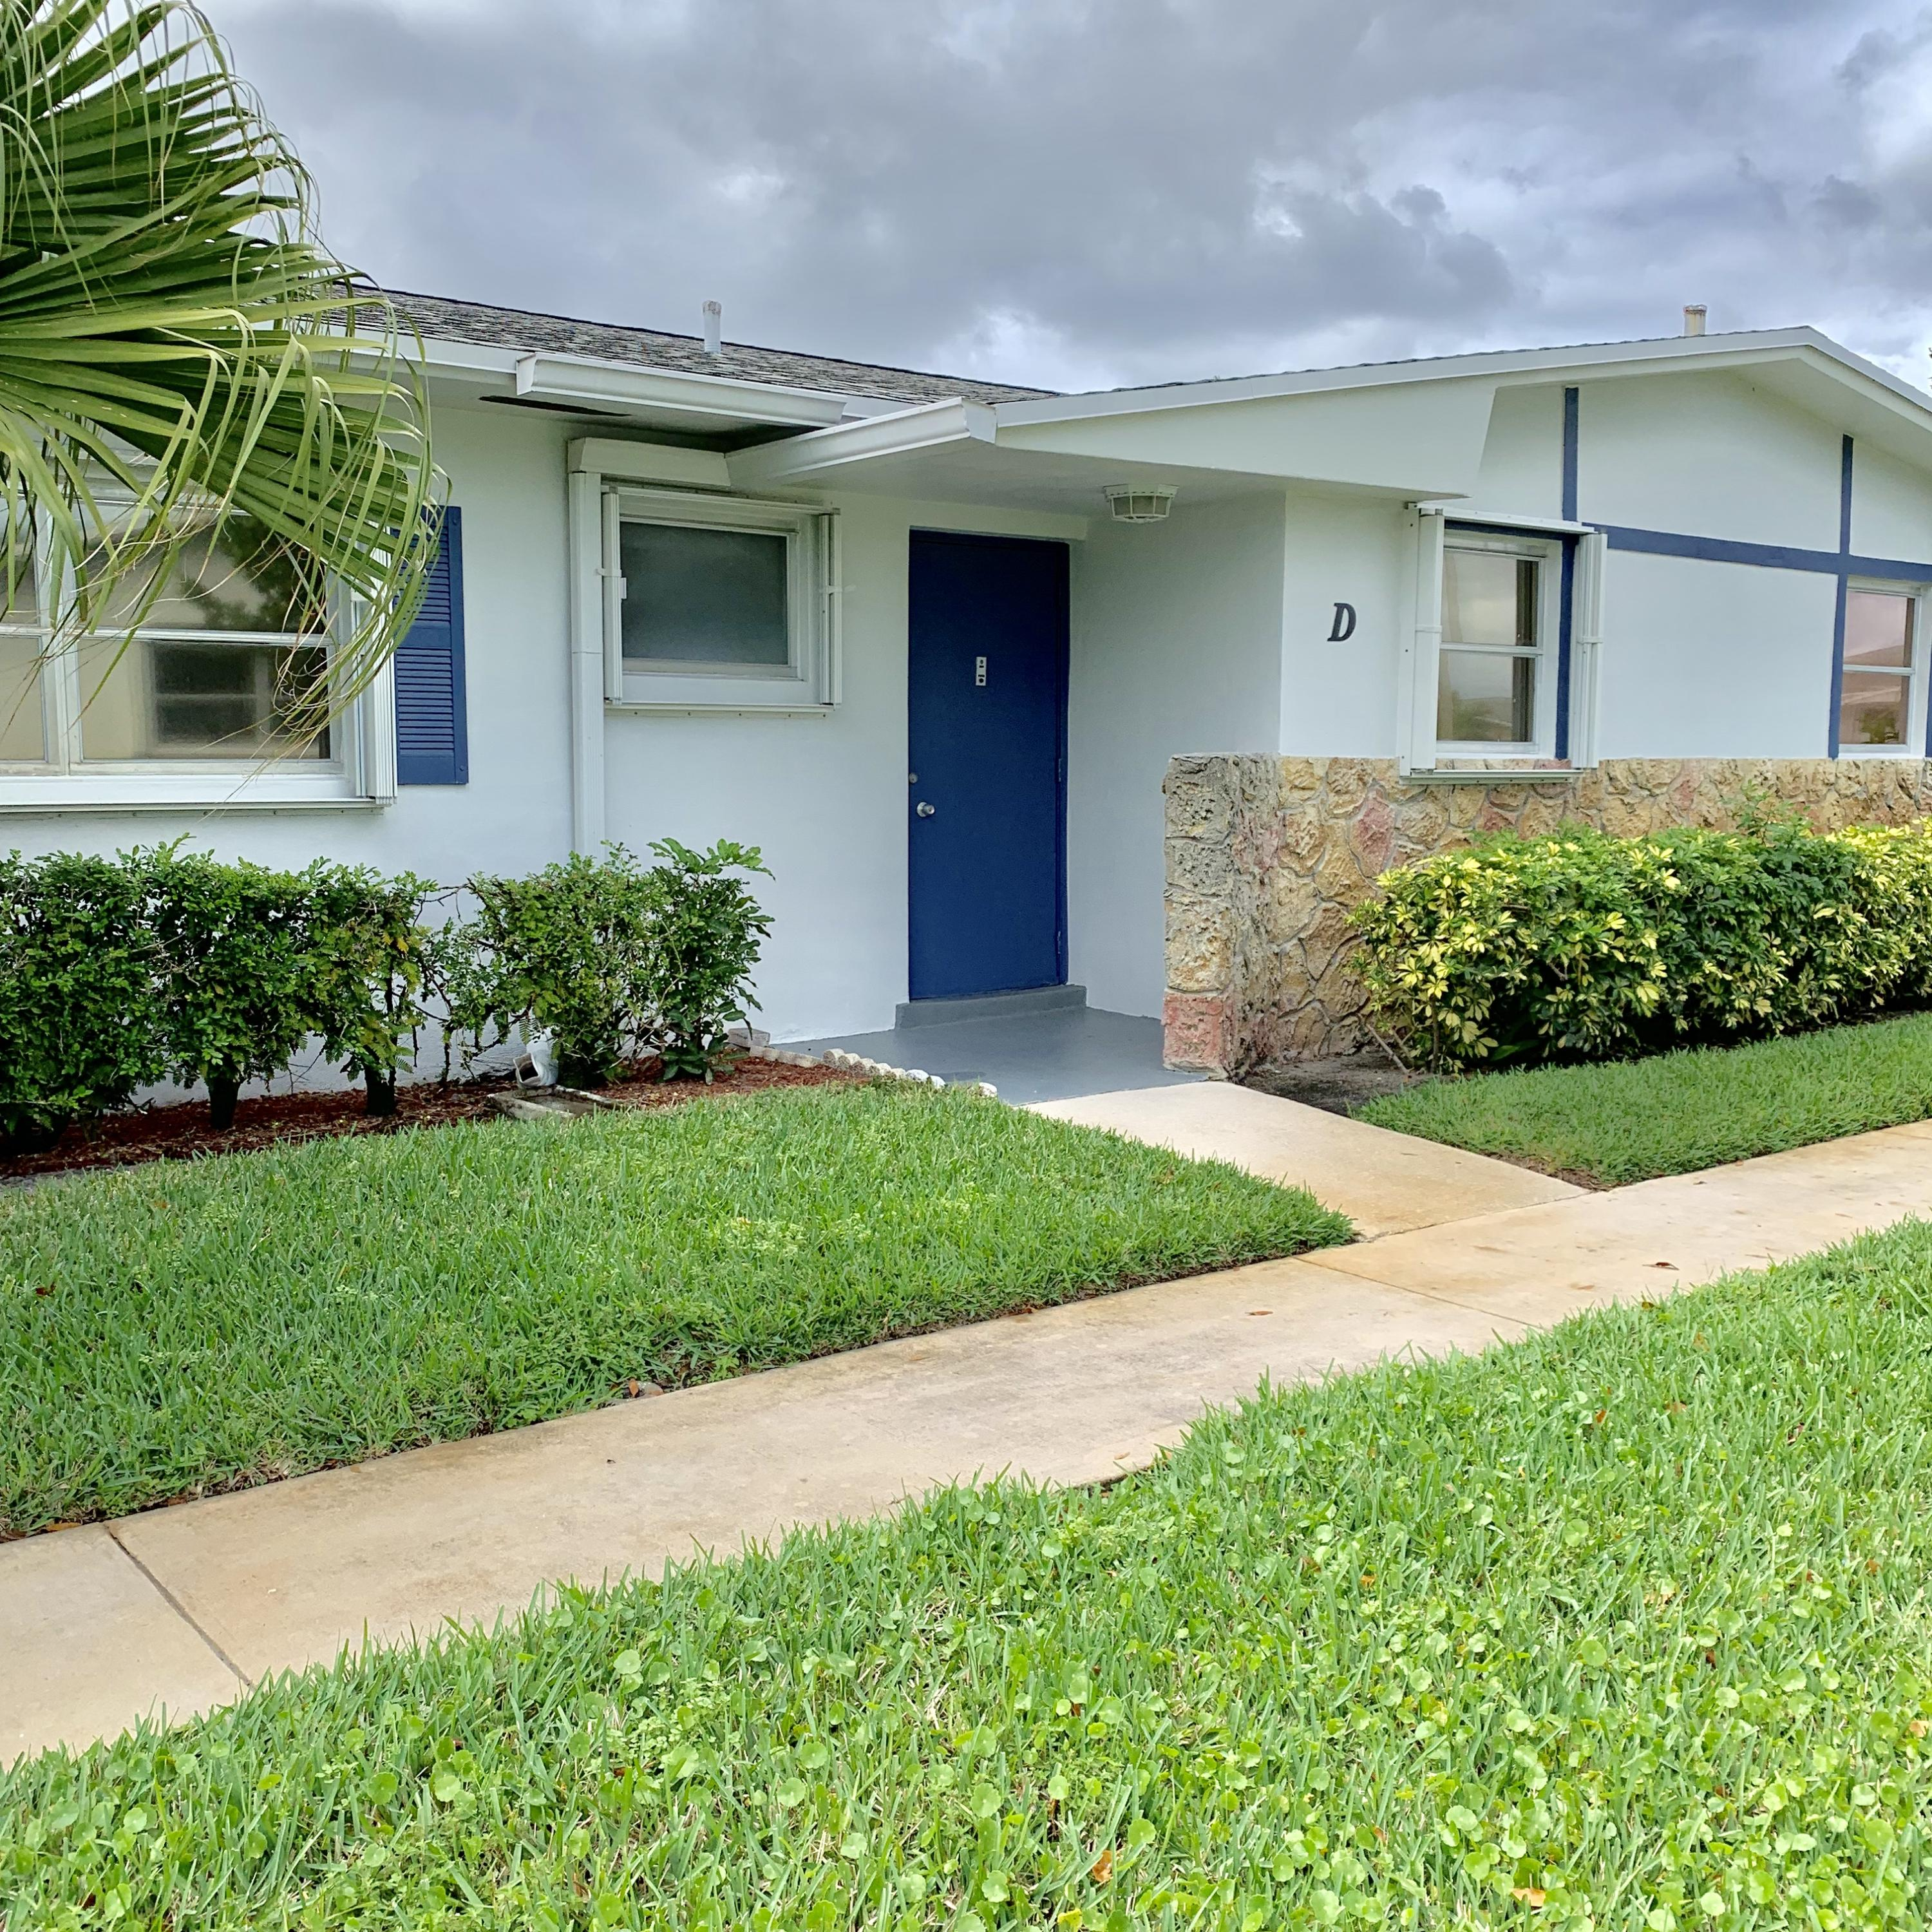 2633 Emory Drive, West Palm Beach, Florida 33415, 2 Bedrooms Bedrooms, ,1 BathroomBathrooms,Condo/Coop,For Rent,Emory Drive W,Emory,1,RX-10514029